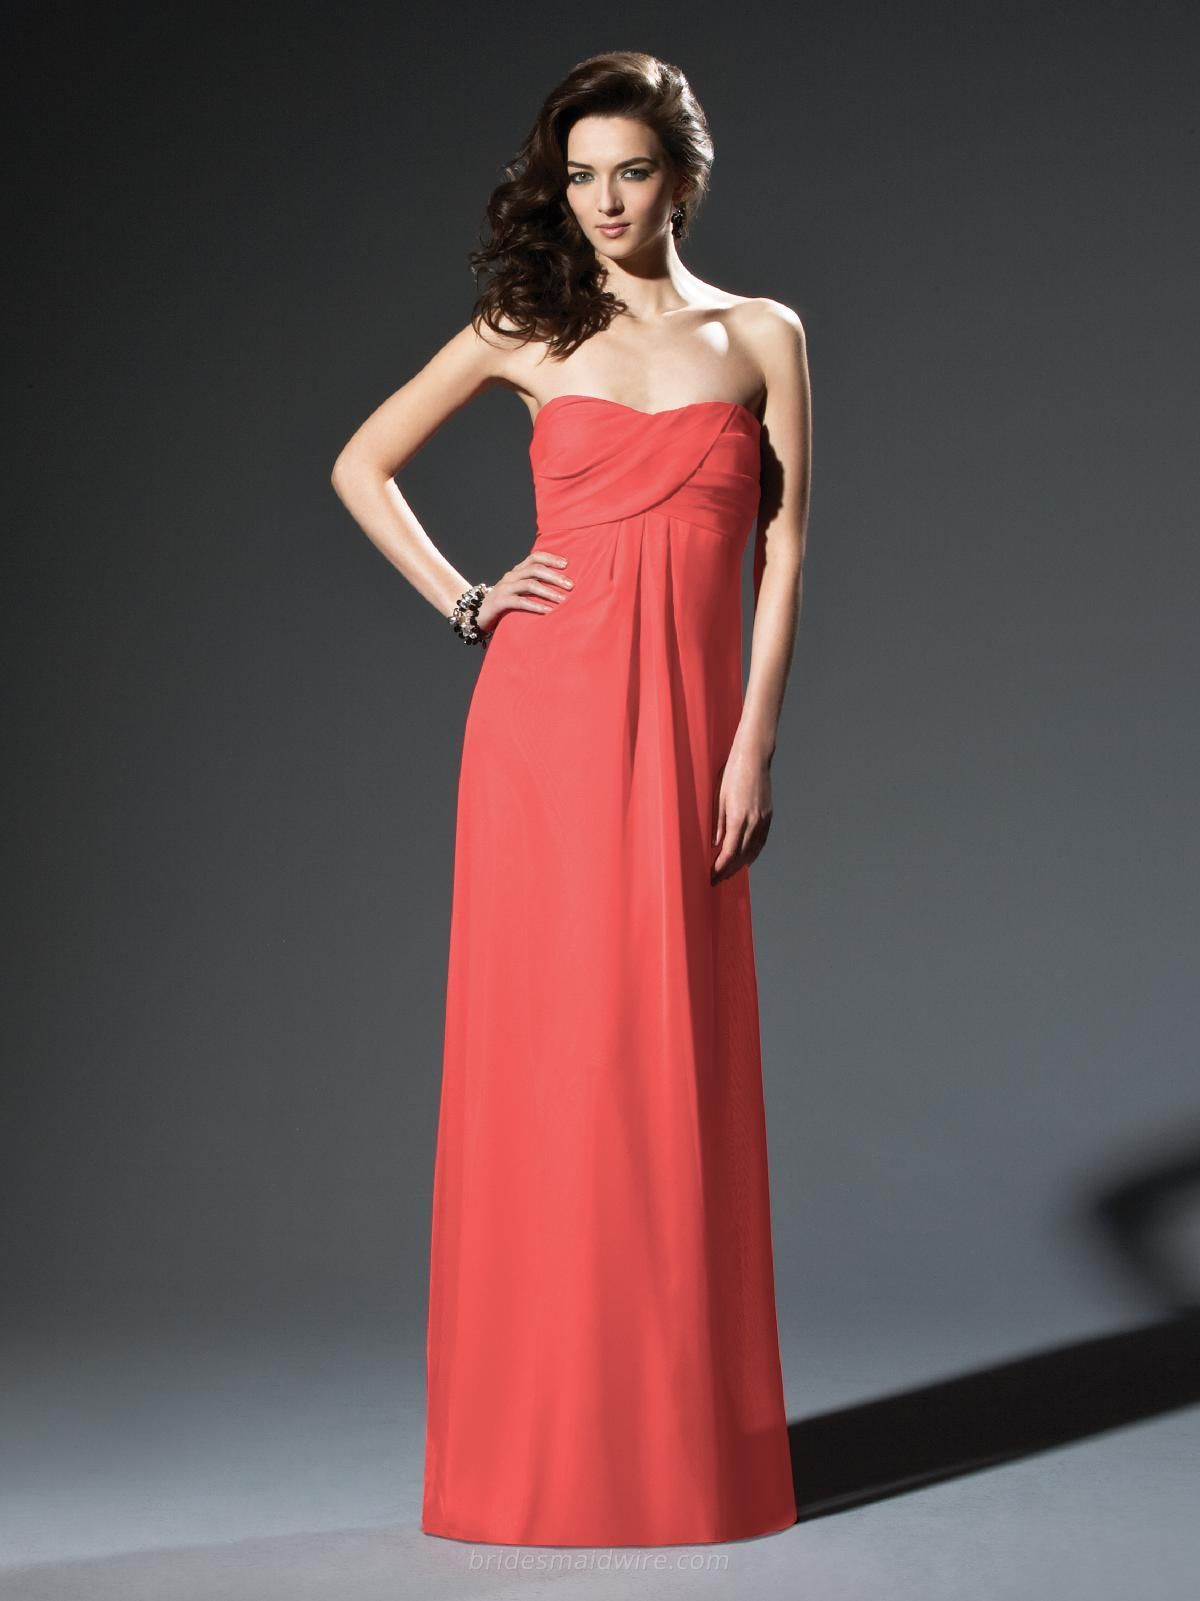 Formal long dresses cheap gallery dresses design ideas red bridesmaid dresses cheap bridesmaid dresses sexy red bridesmaid dresses bridesmaid dresses red bridesmaid dresses dresses ombrellifo Image collections